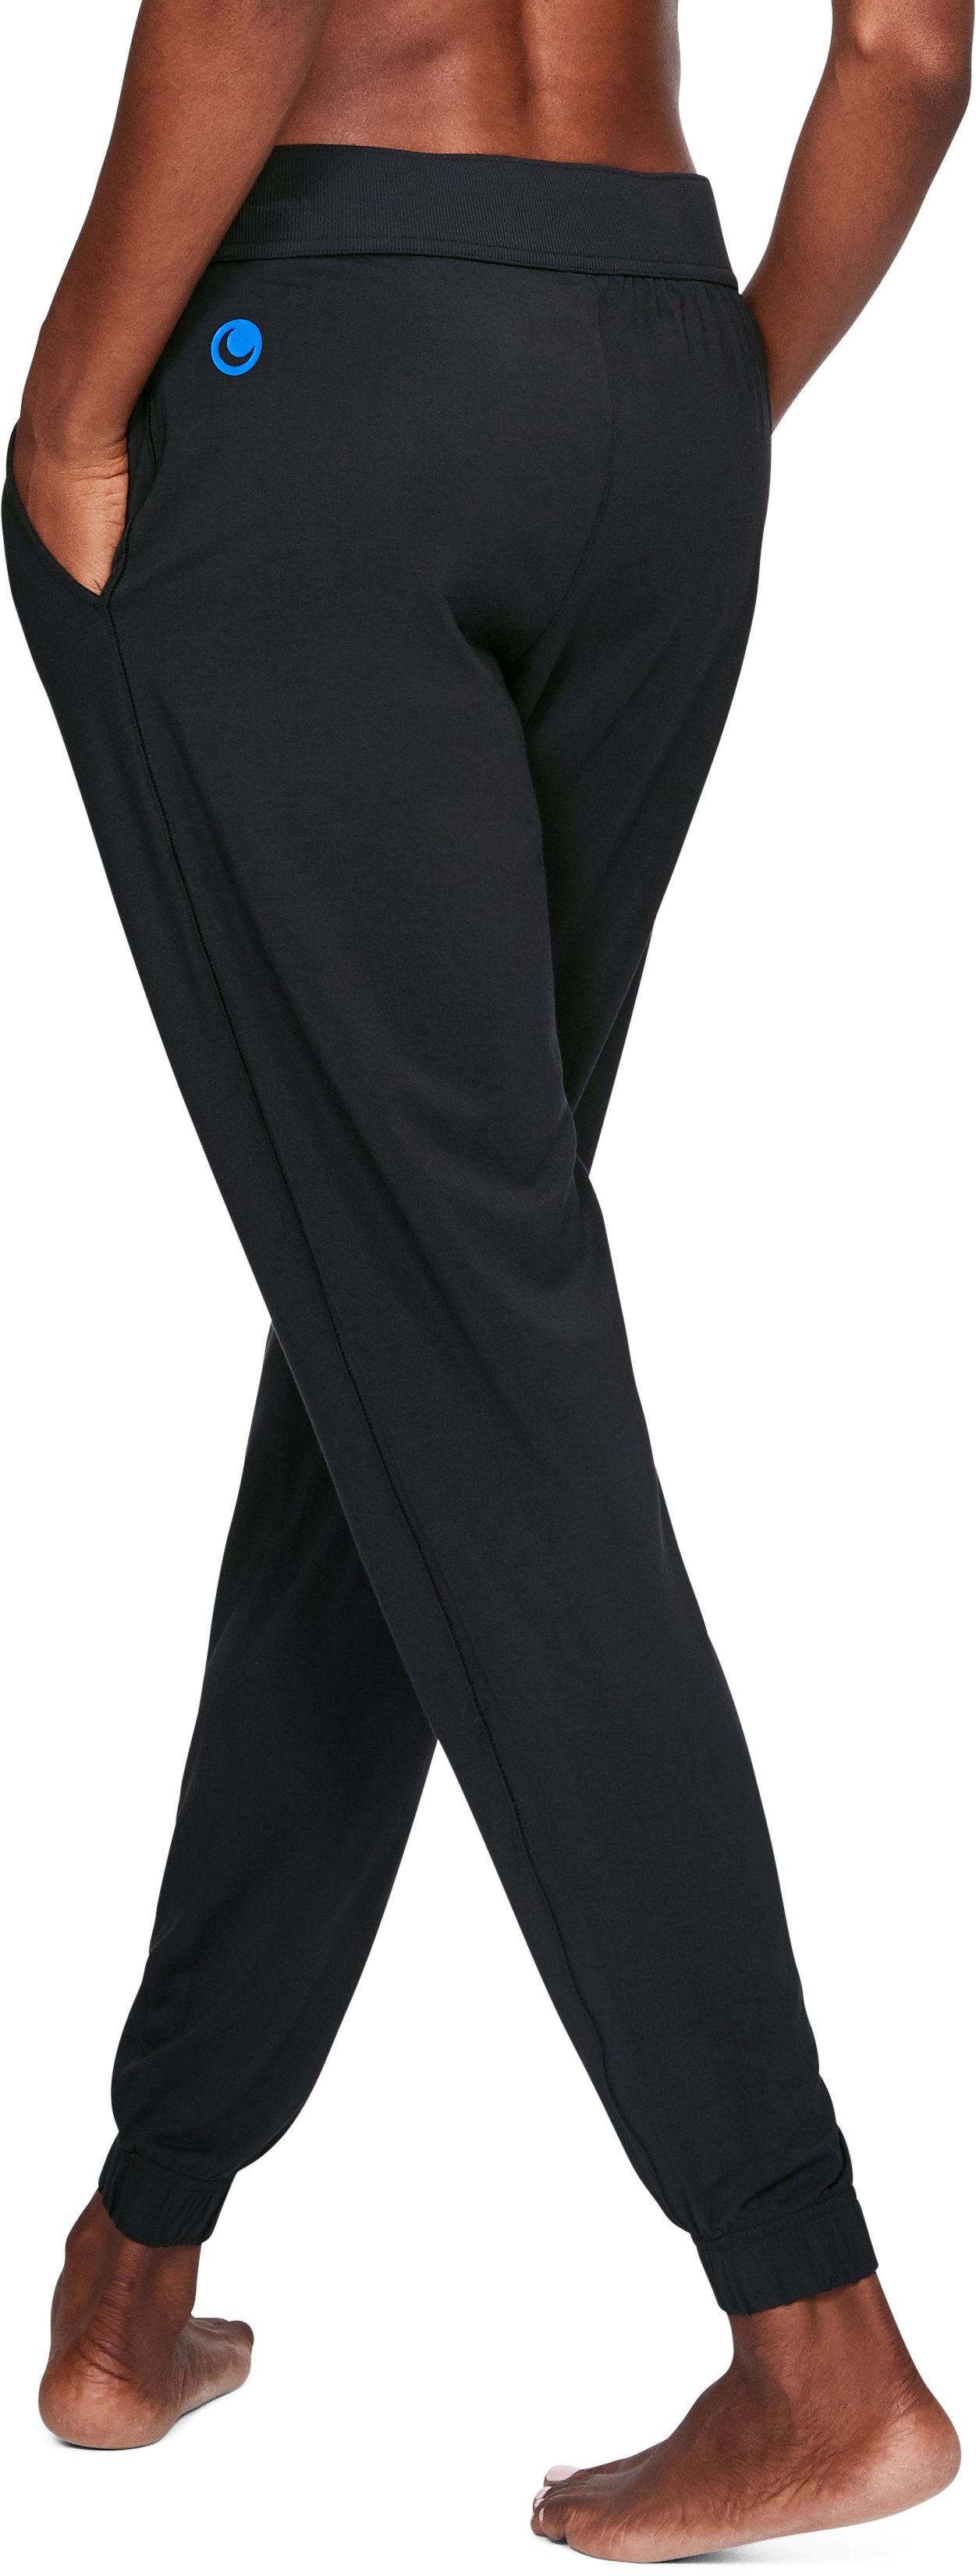 Women's Athlete Recovery Ultra Comfort Sleepwear Pants, Black ,